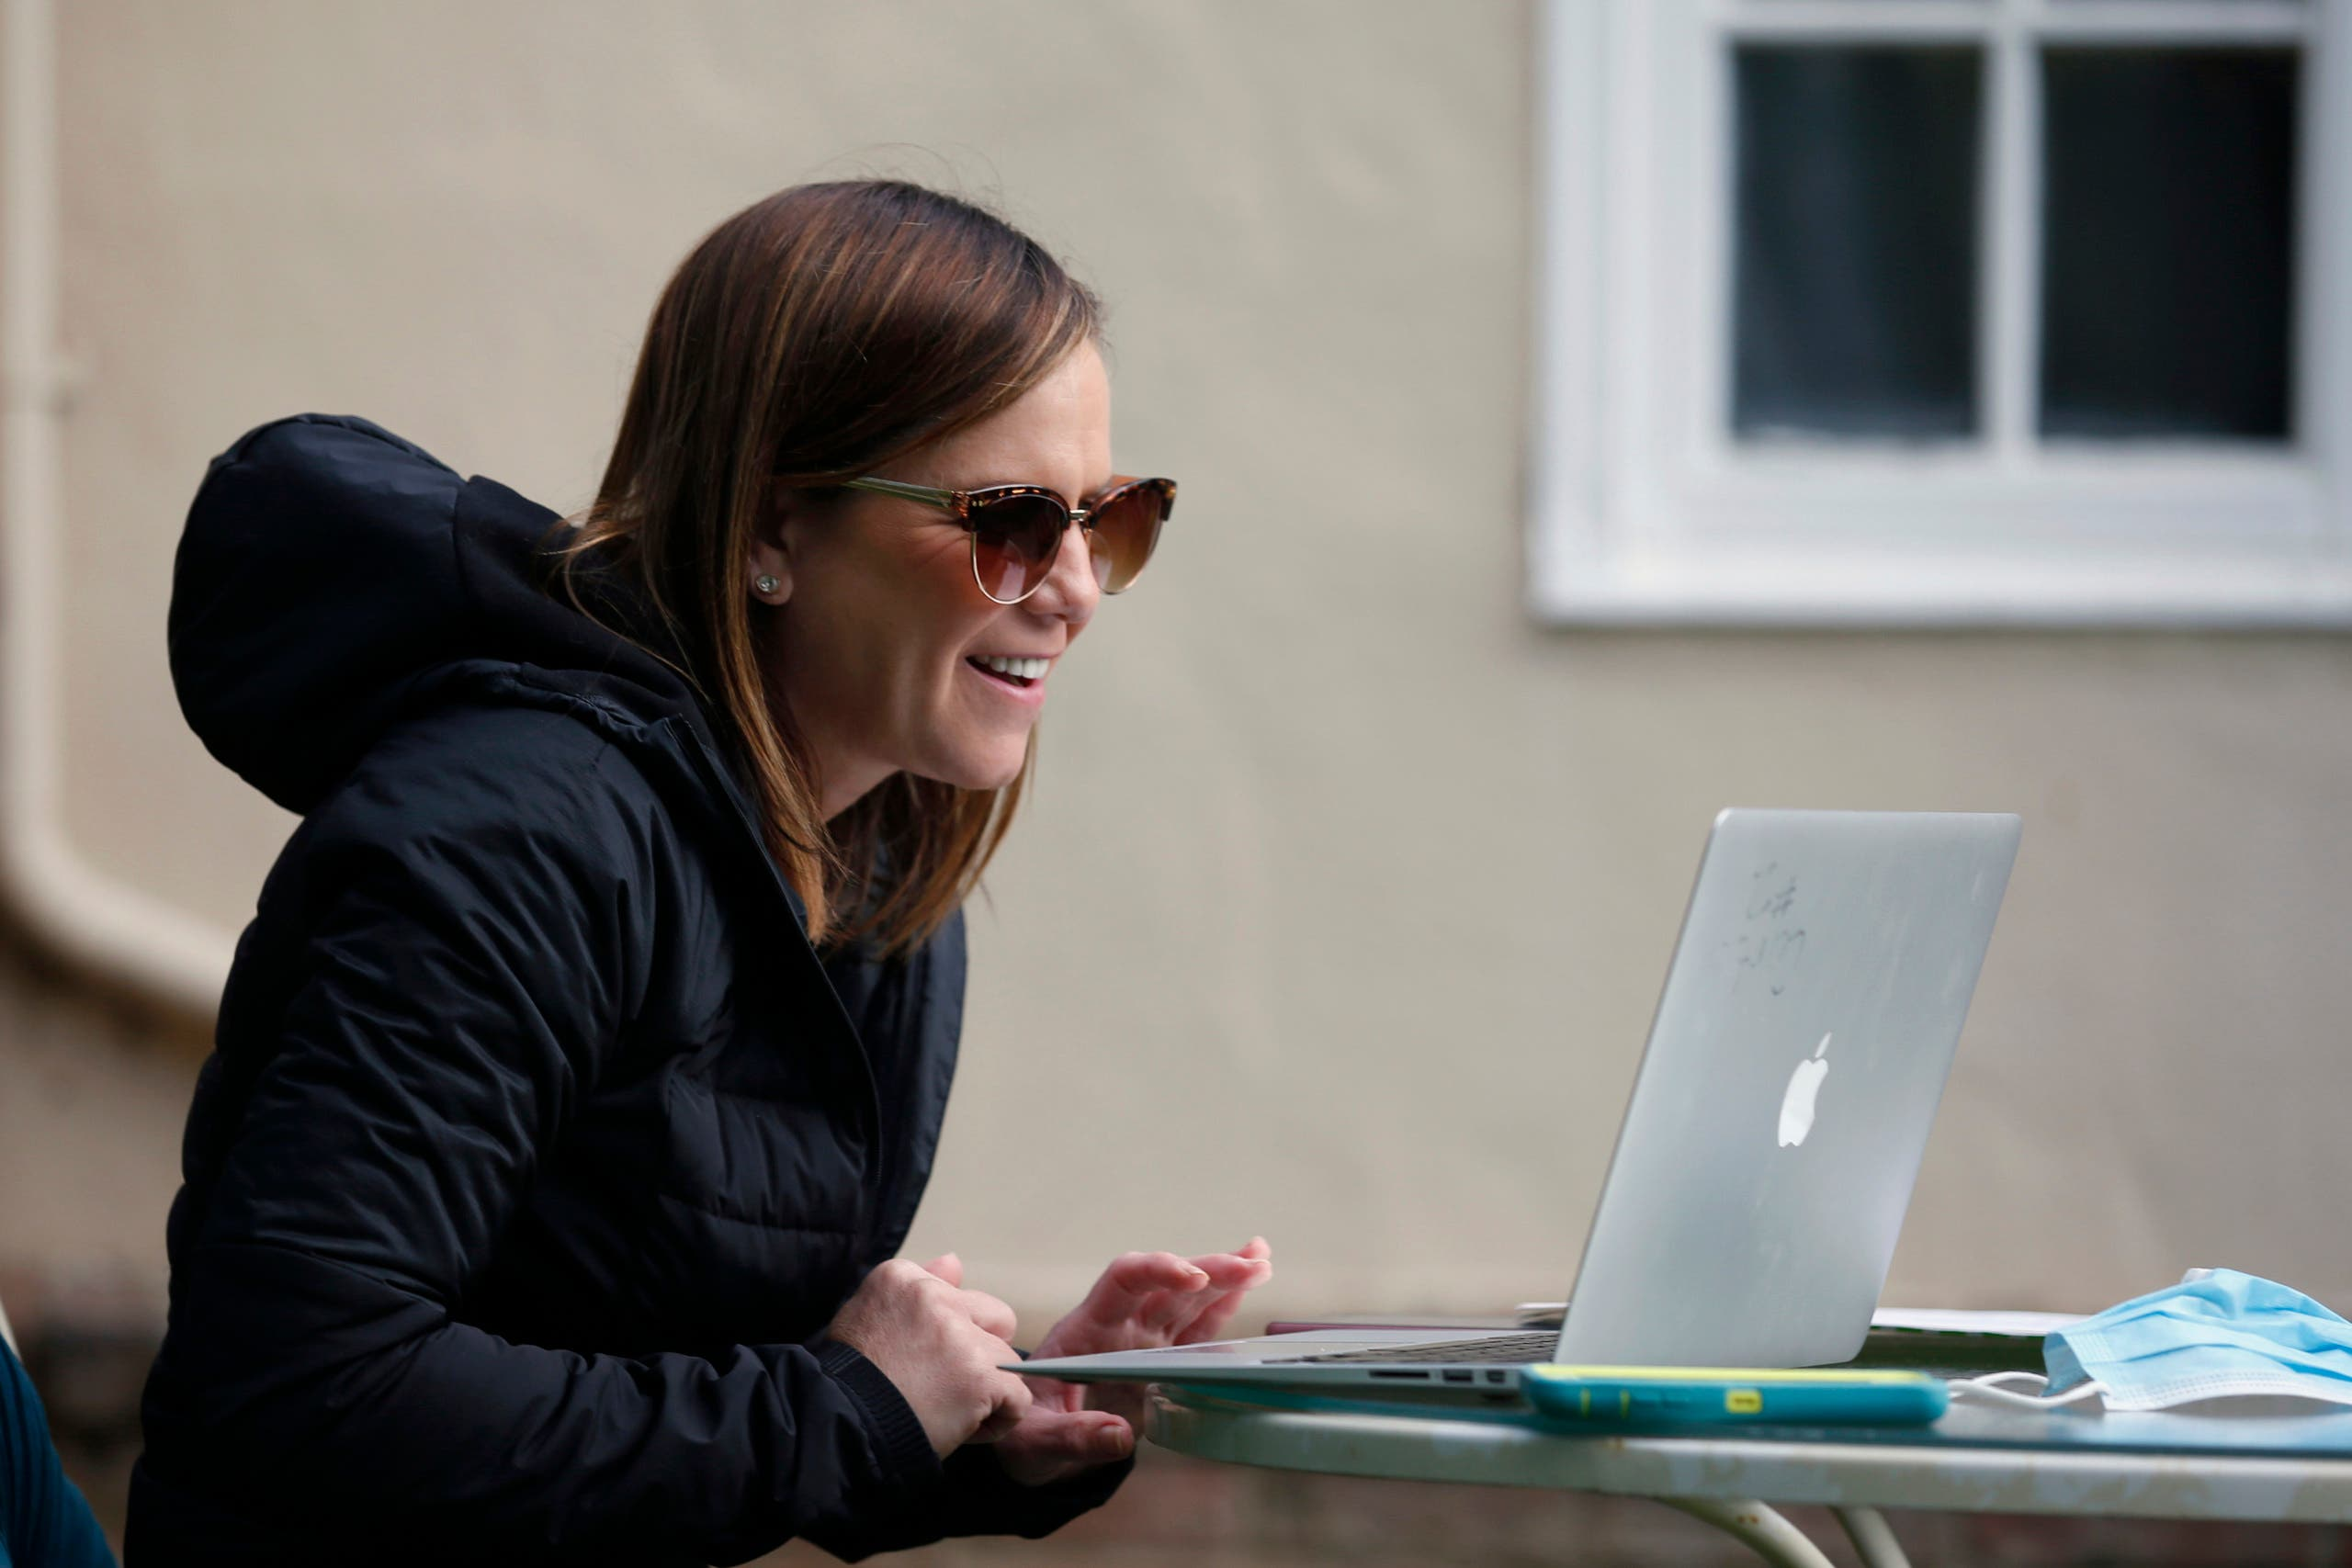 Kelly Dighero, a 3rd grade teacher at Phoebe Hearst Elementary School, holds her first online meeting with students and parents on the front lawn of her home in Sacramento, Calif. on April 13, 2020. (AP)